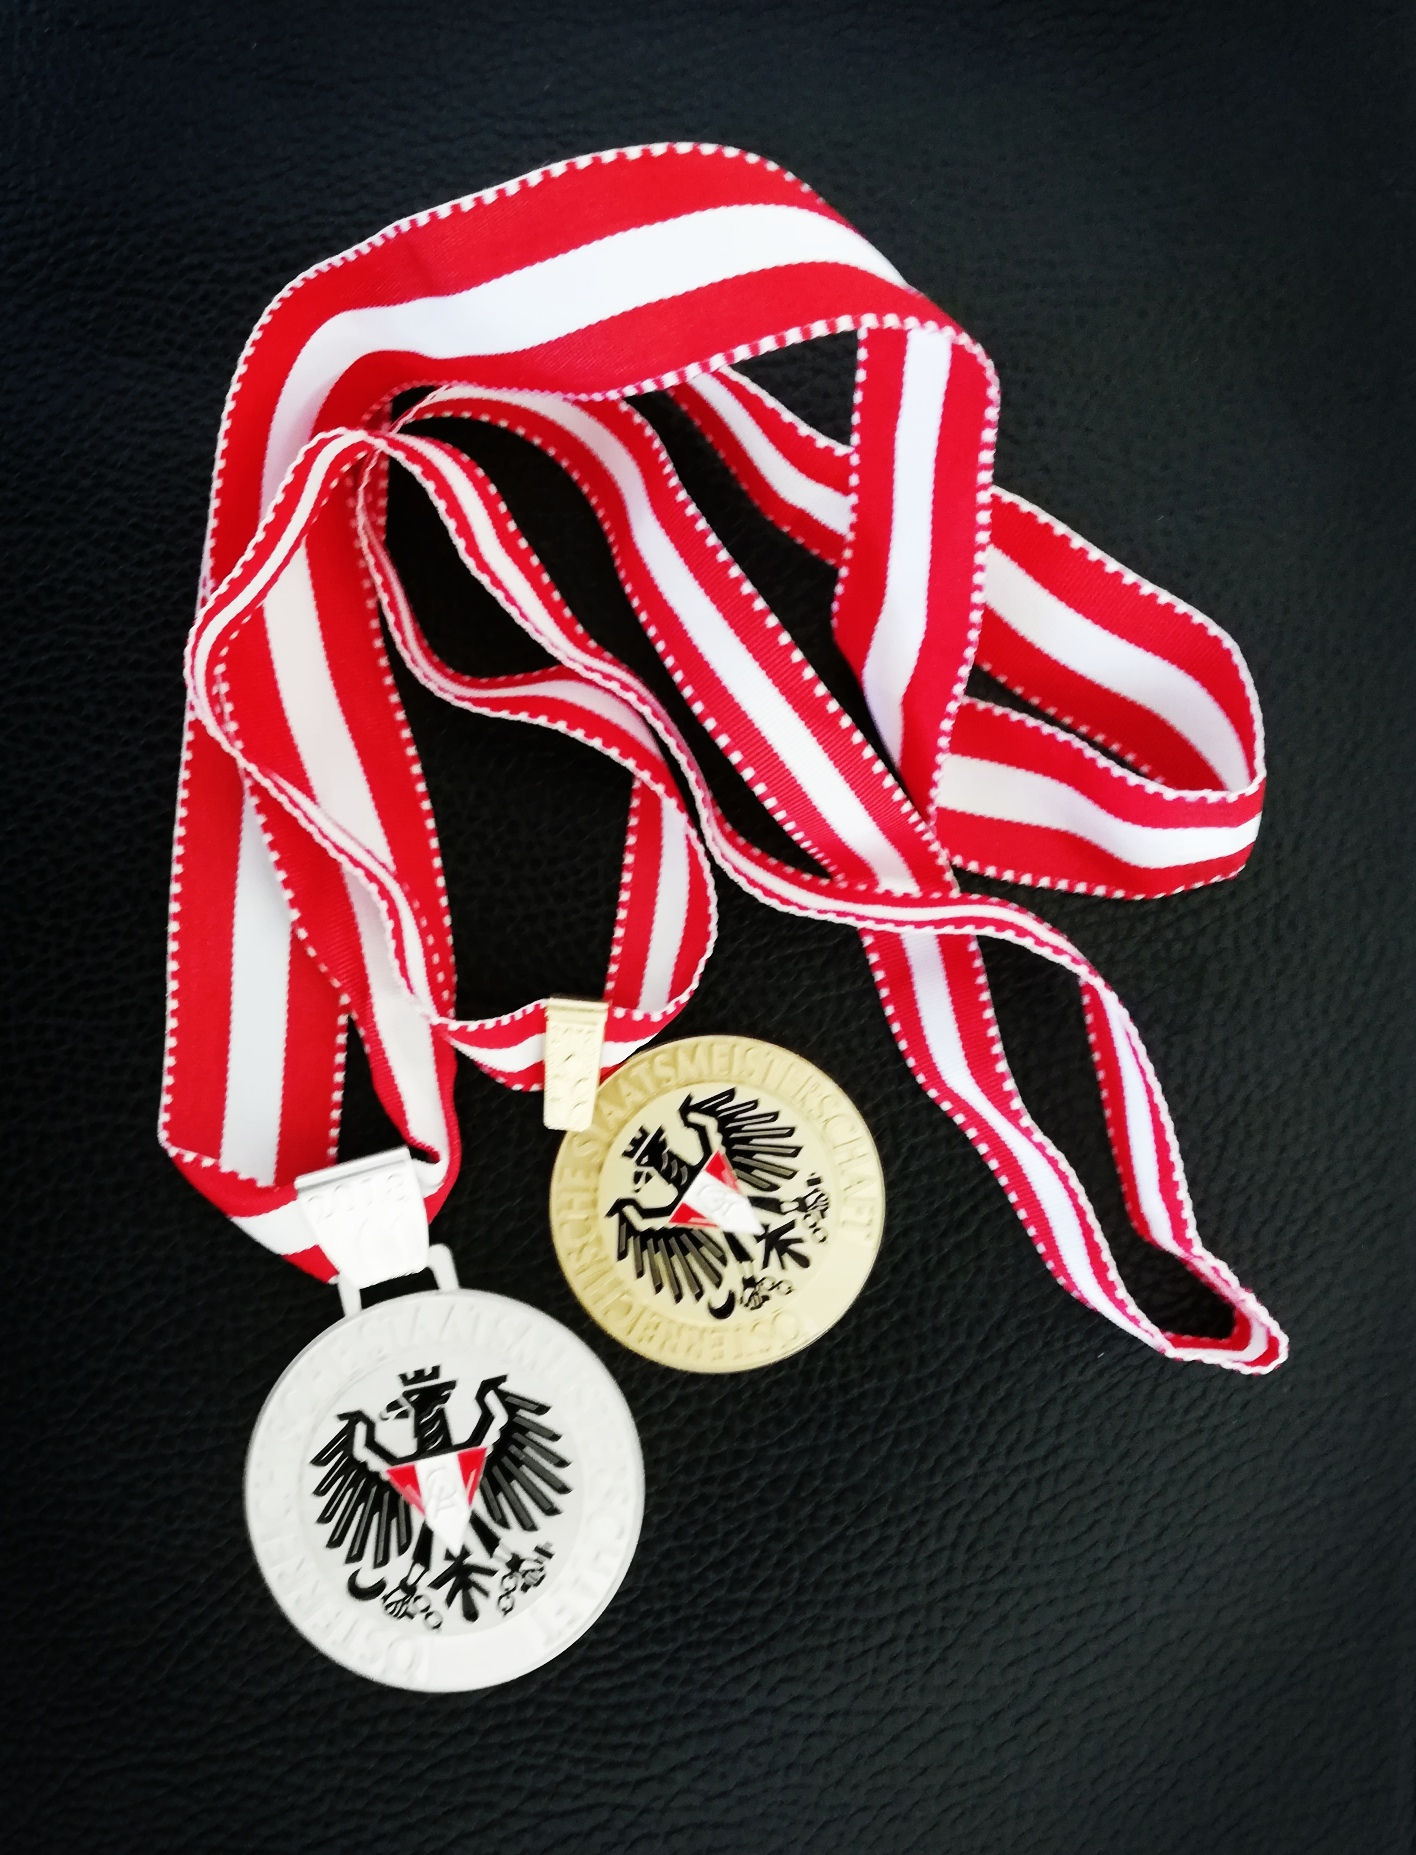 - I am very happy about Silver and Bronze at the